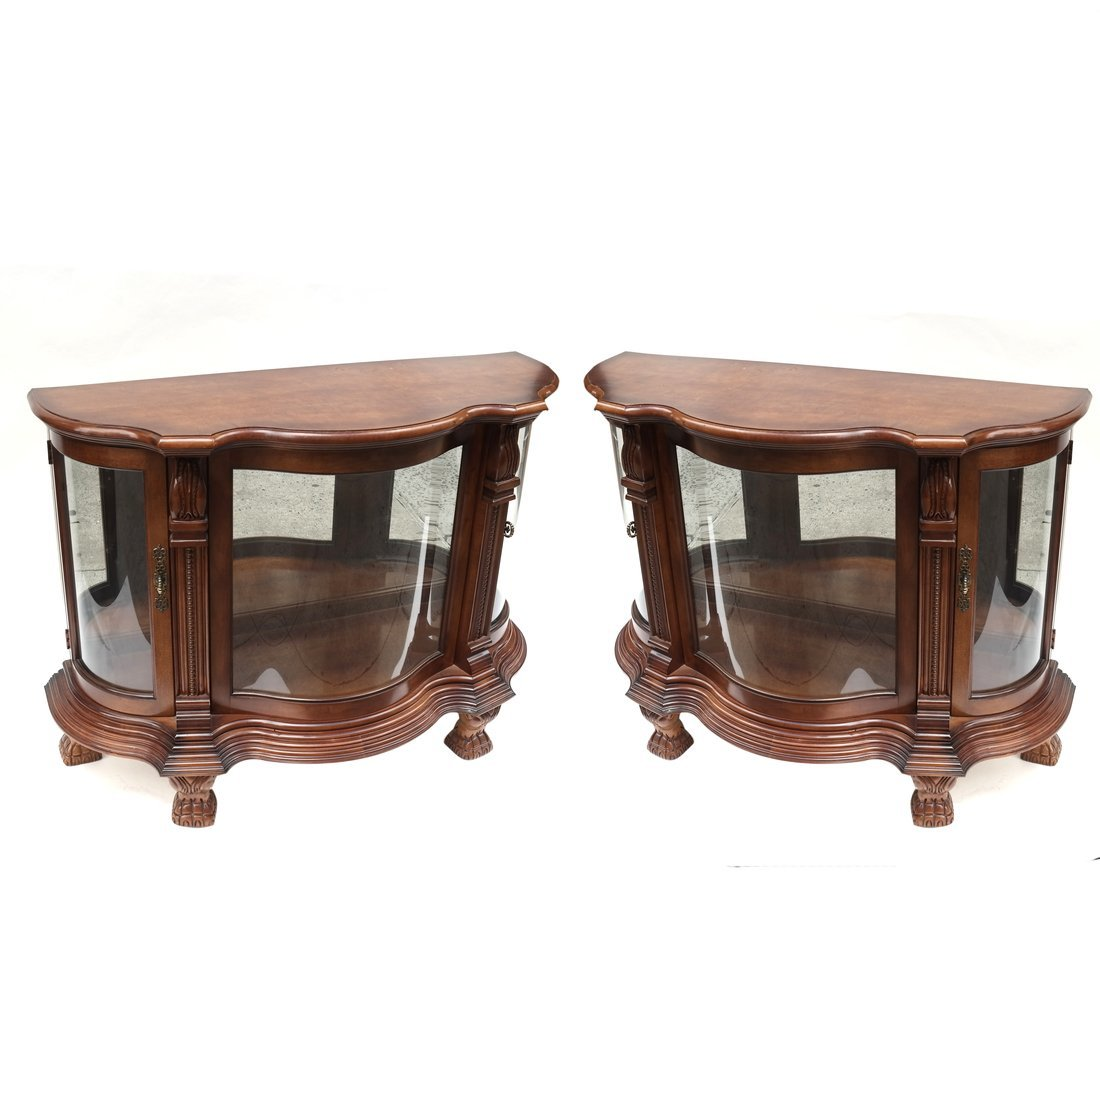 A Pair of Serpentine Cabinets